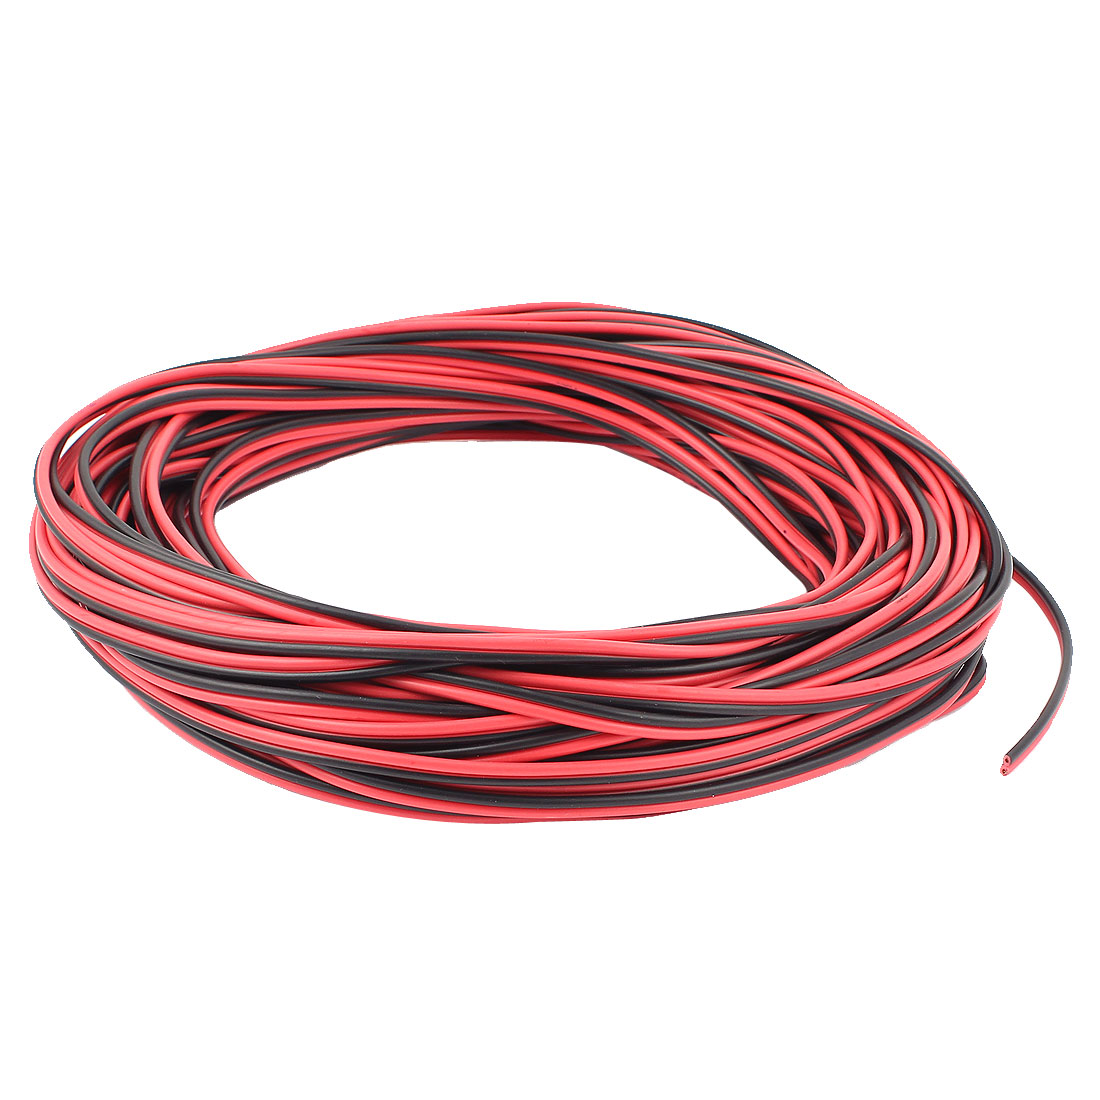 AC 220V 30M PVC Stranded Gauge Electronic Wire Black Red